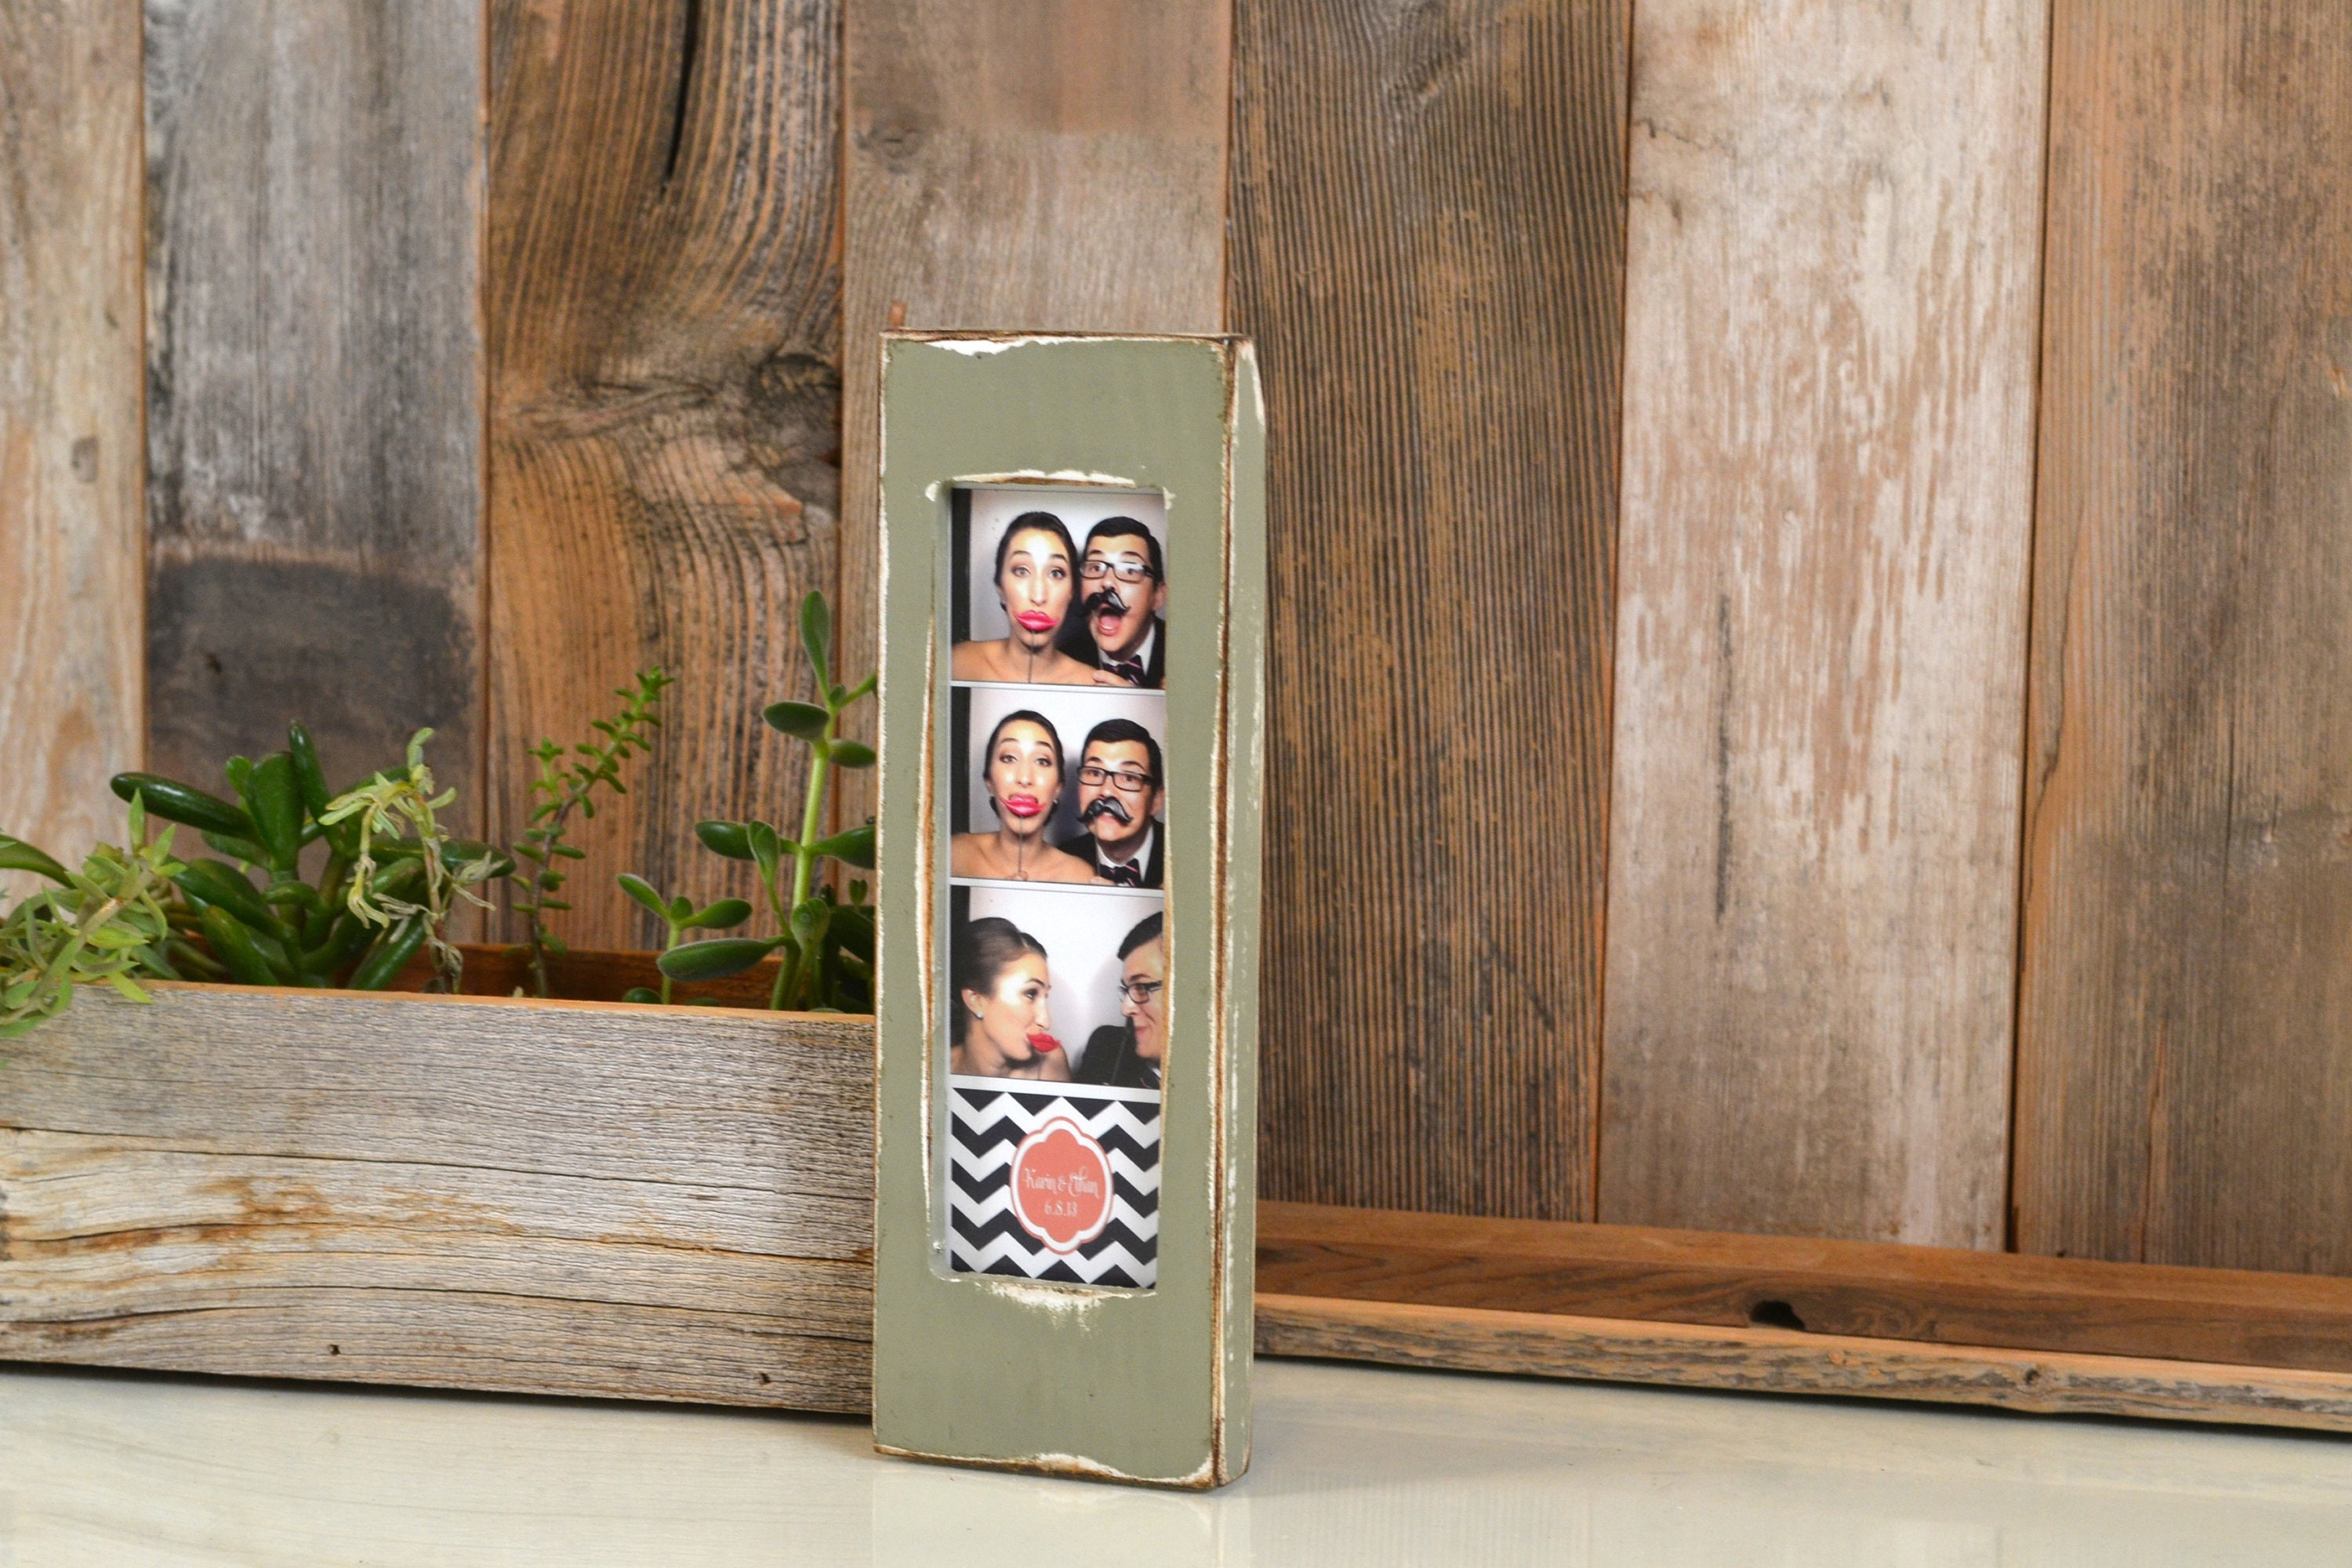 Aqua /& Lime Green Photo Booth Picture Frame Holds a 2 x 6 Photo Strip Distressed Edges